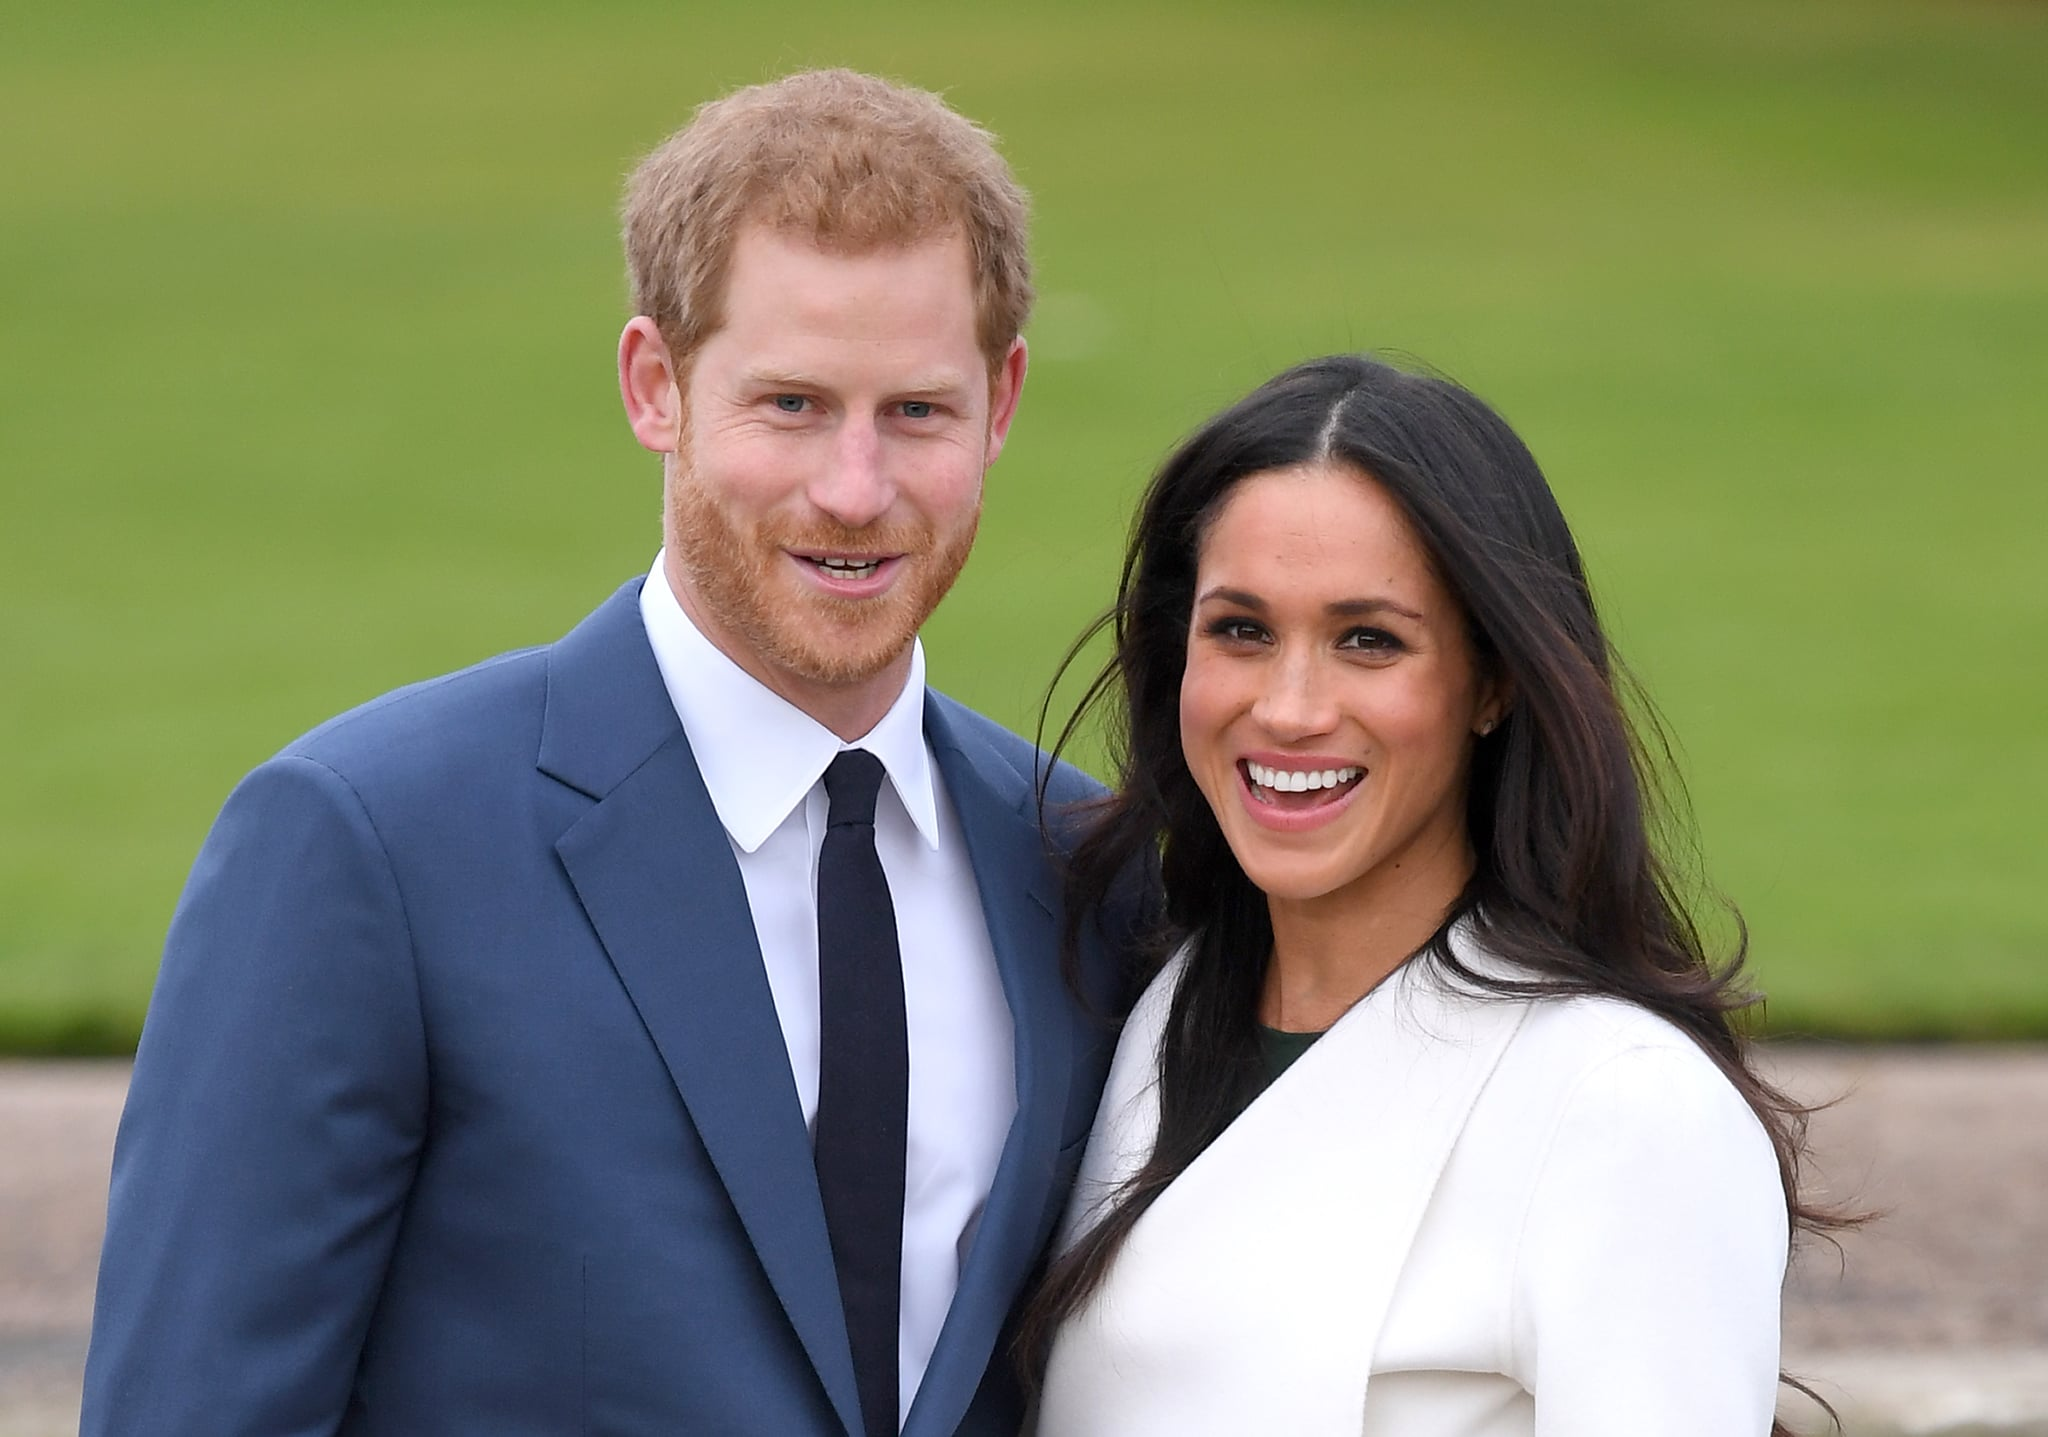 Meghan Markle Has Officially Been Baptized in Secret Ceremony